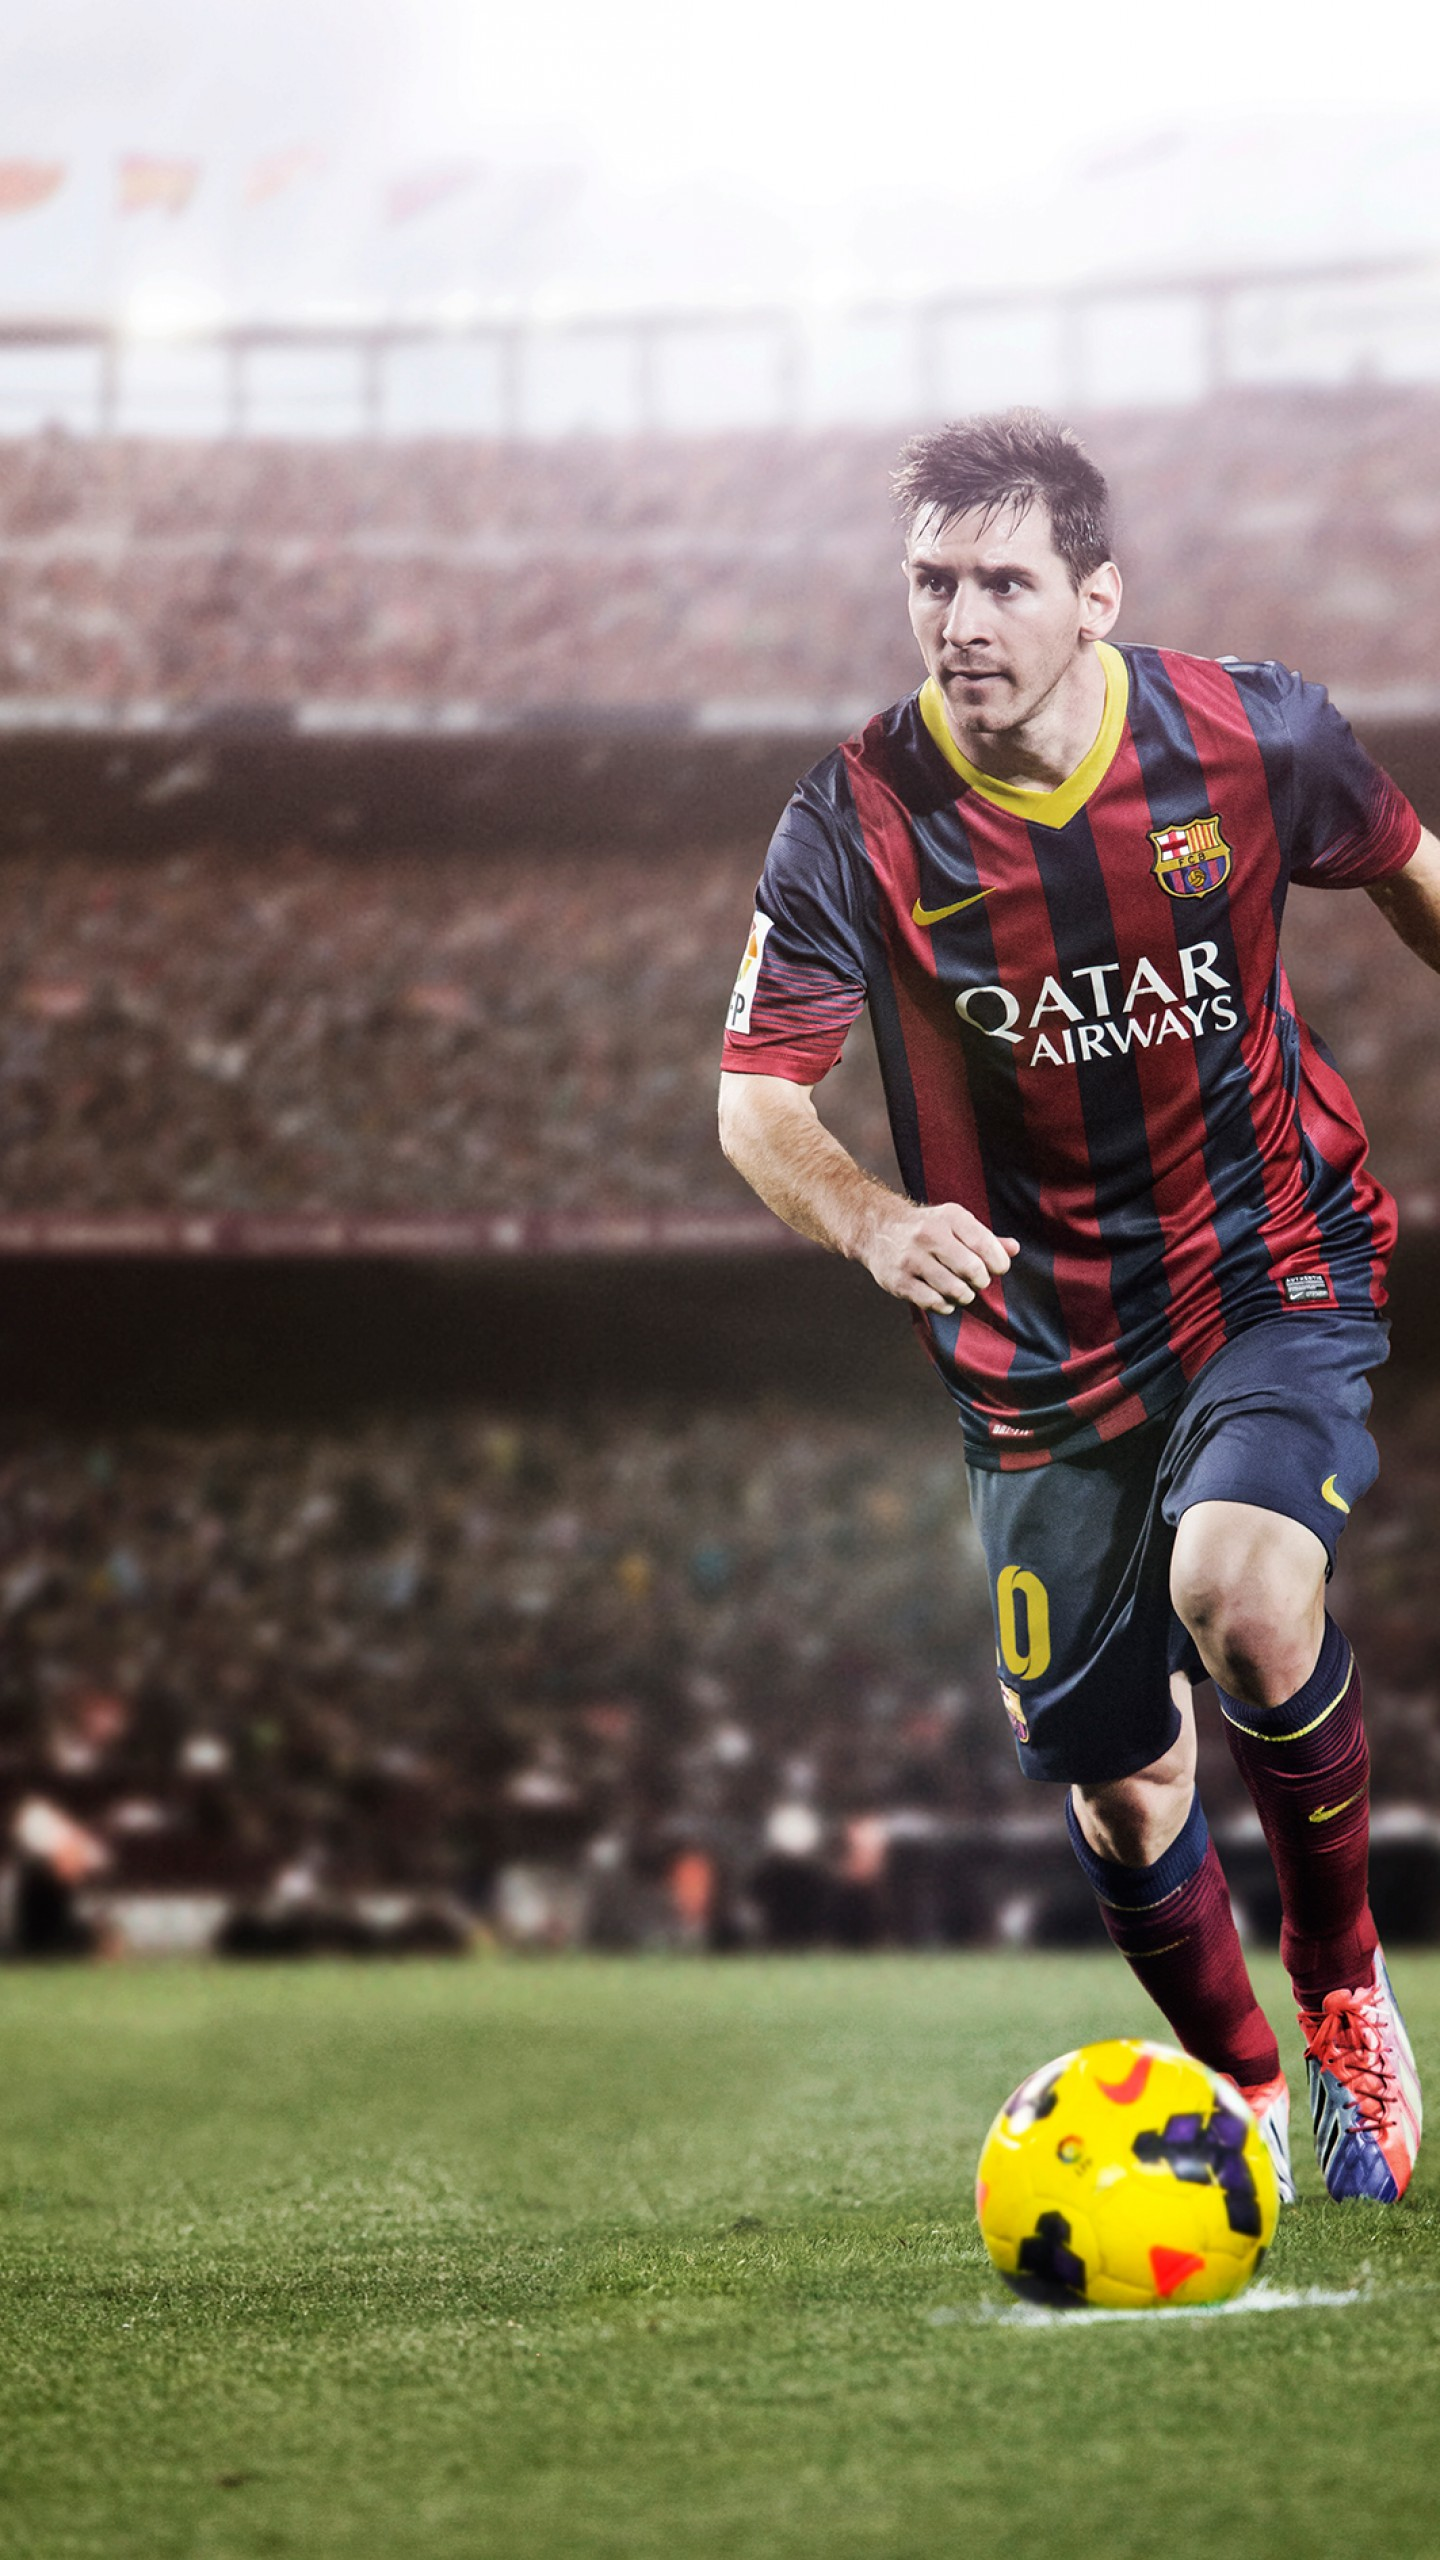 Lionel Messi Football Kicking , HD Wallpaper & Backgrounds